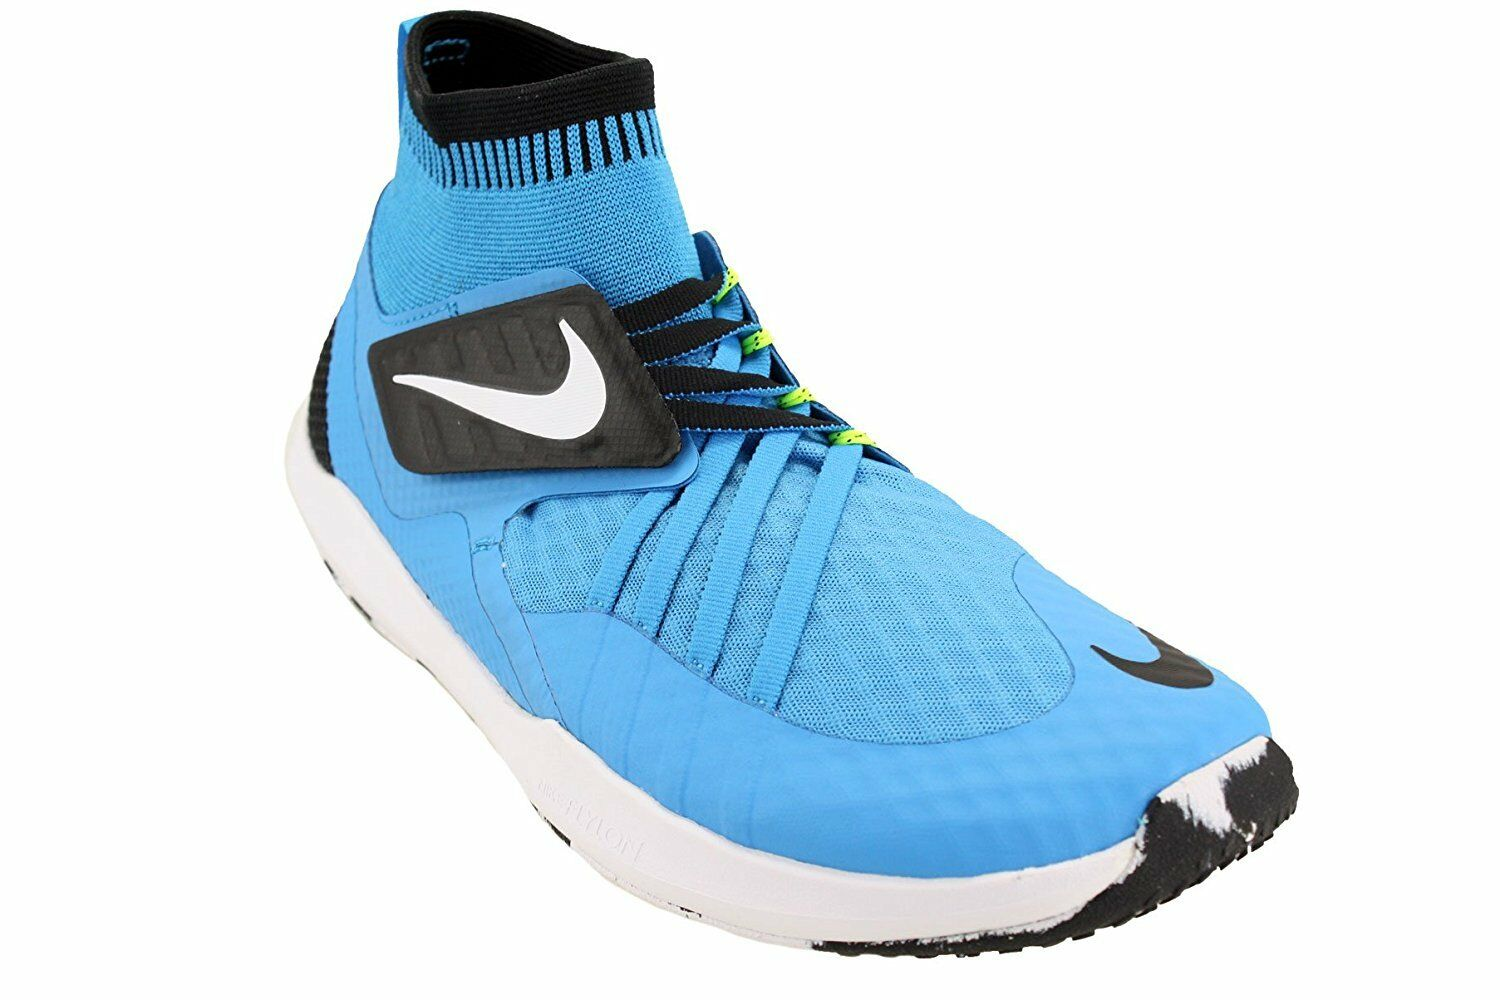 NIKE FLYLON TRAIN DYNAMIC Bleu Gfaible TRAINING chaussures homme SELECT YOUR Taille